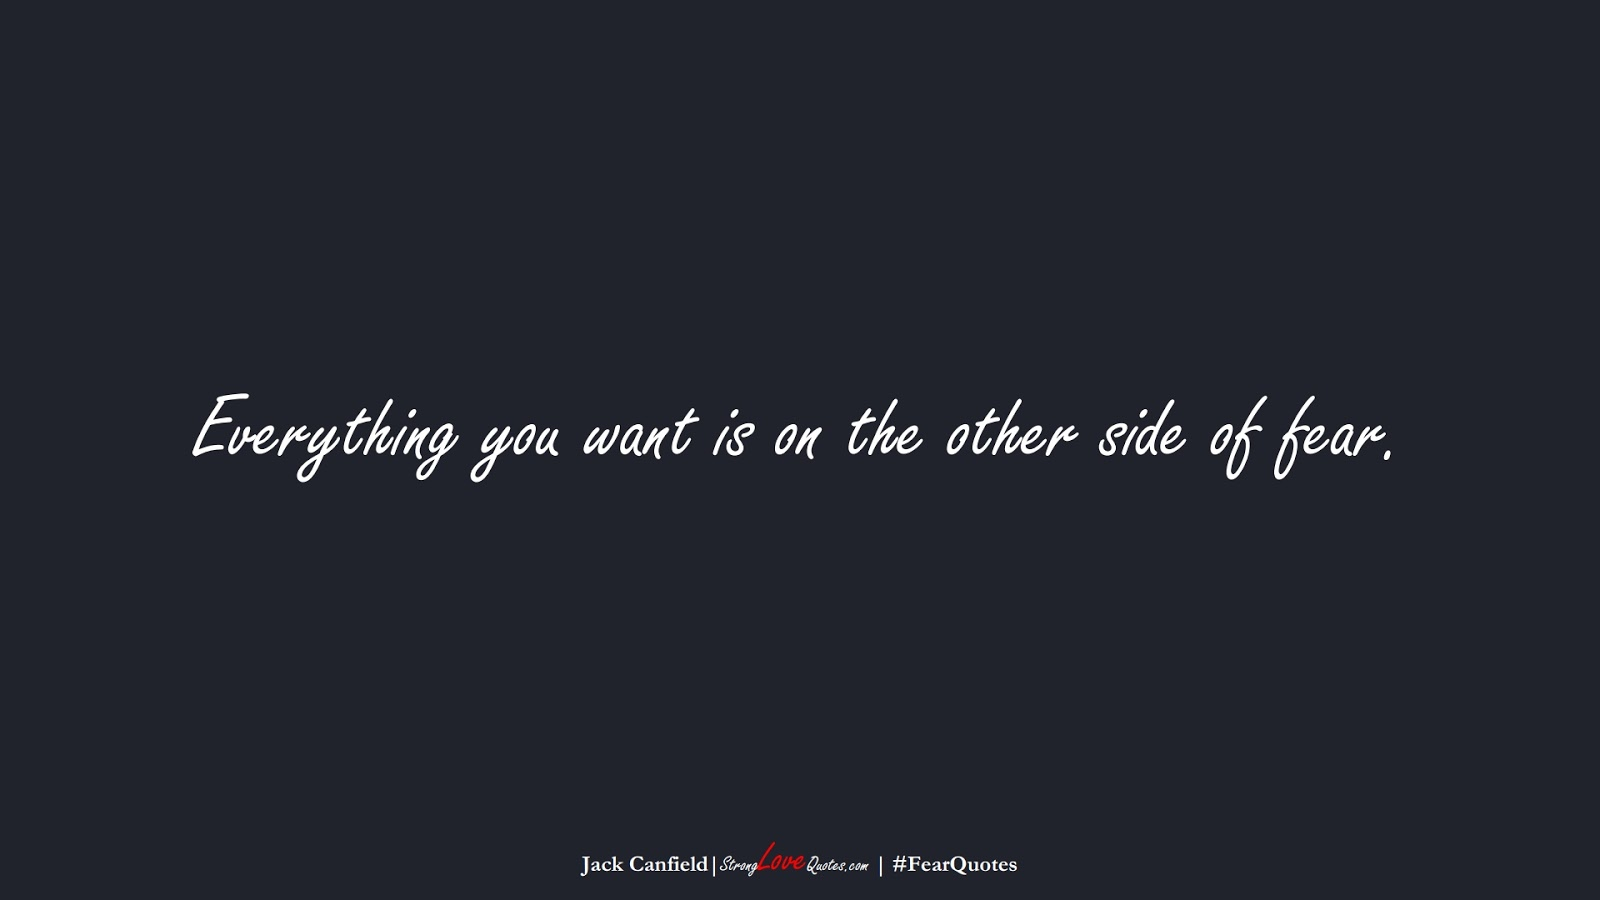 Everything you want is on the other side of fear. (Jack Canfield);  #FearQuotes